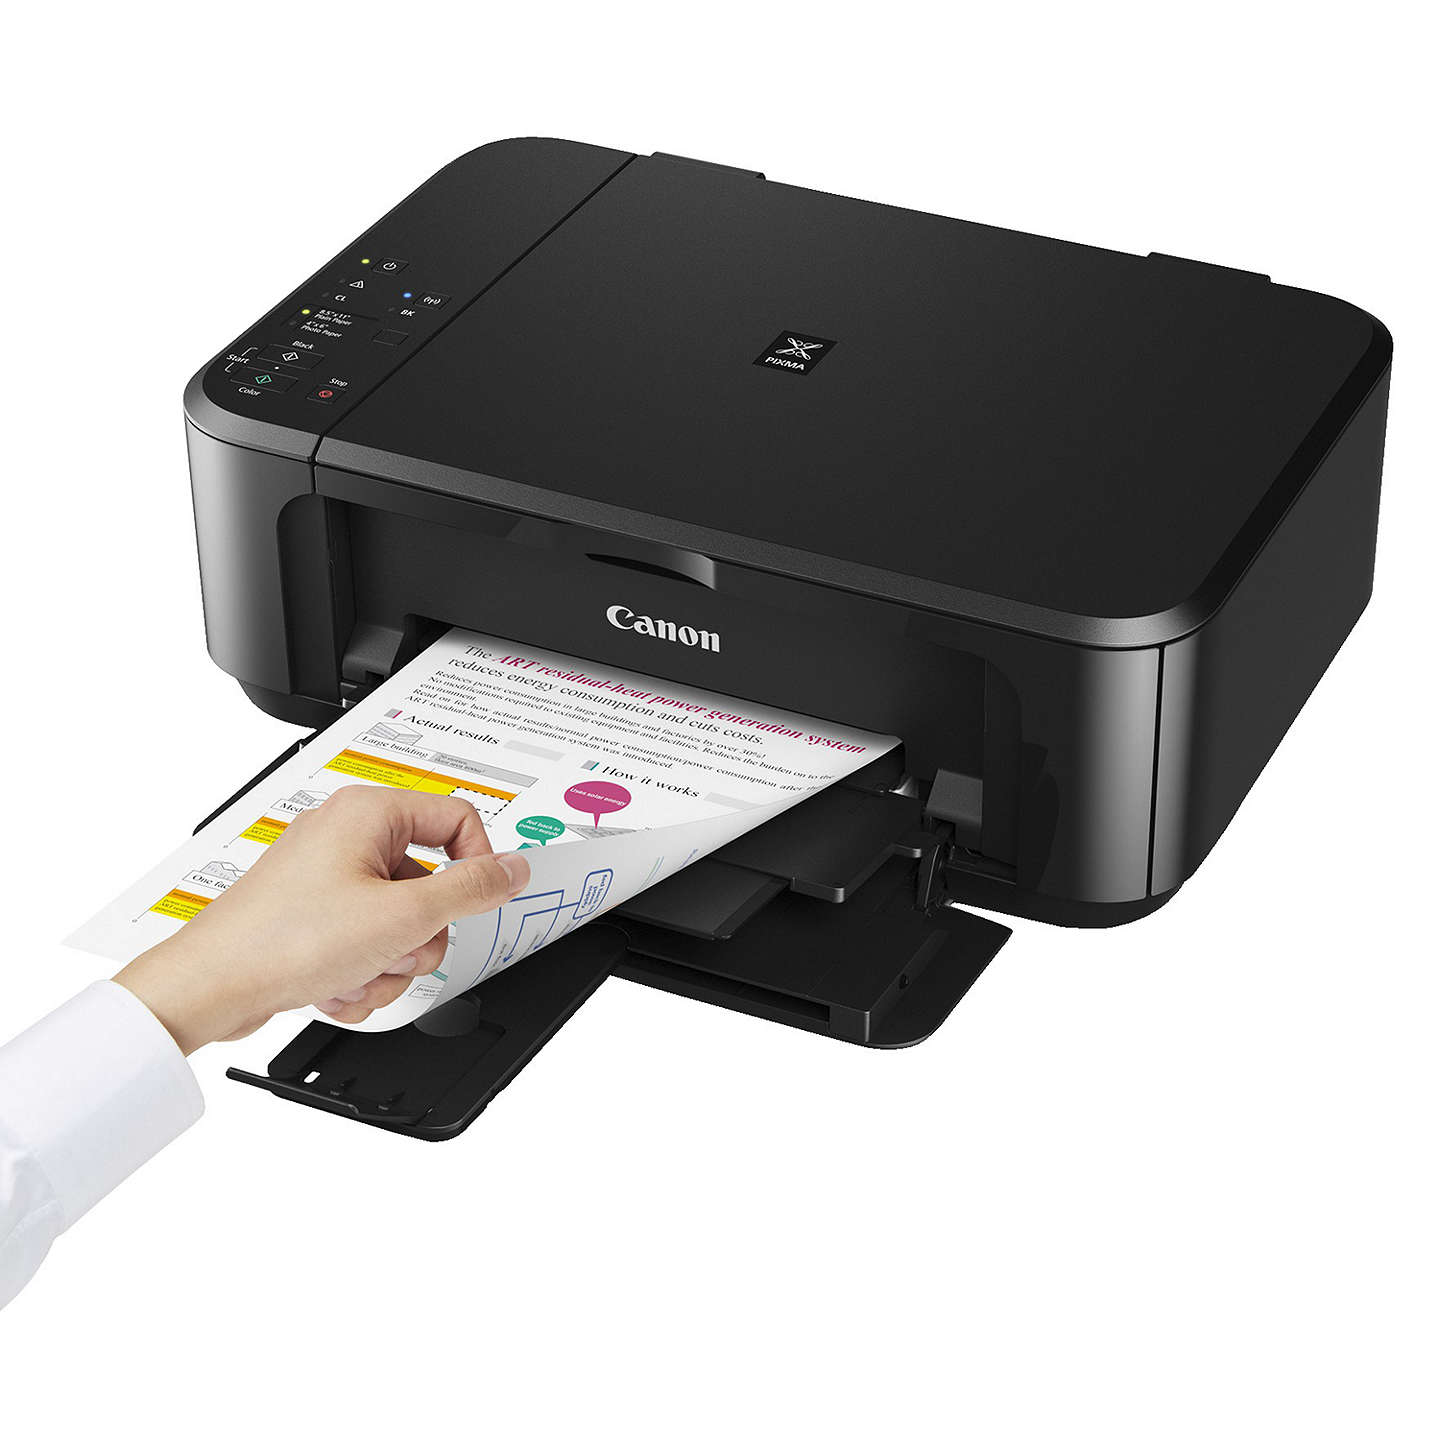 canon pixma mg3650 all in one wireless wi fi printer at john lewis. Black Bedroom Furniture Sets. Home Design Ideas